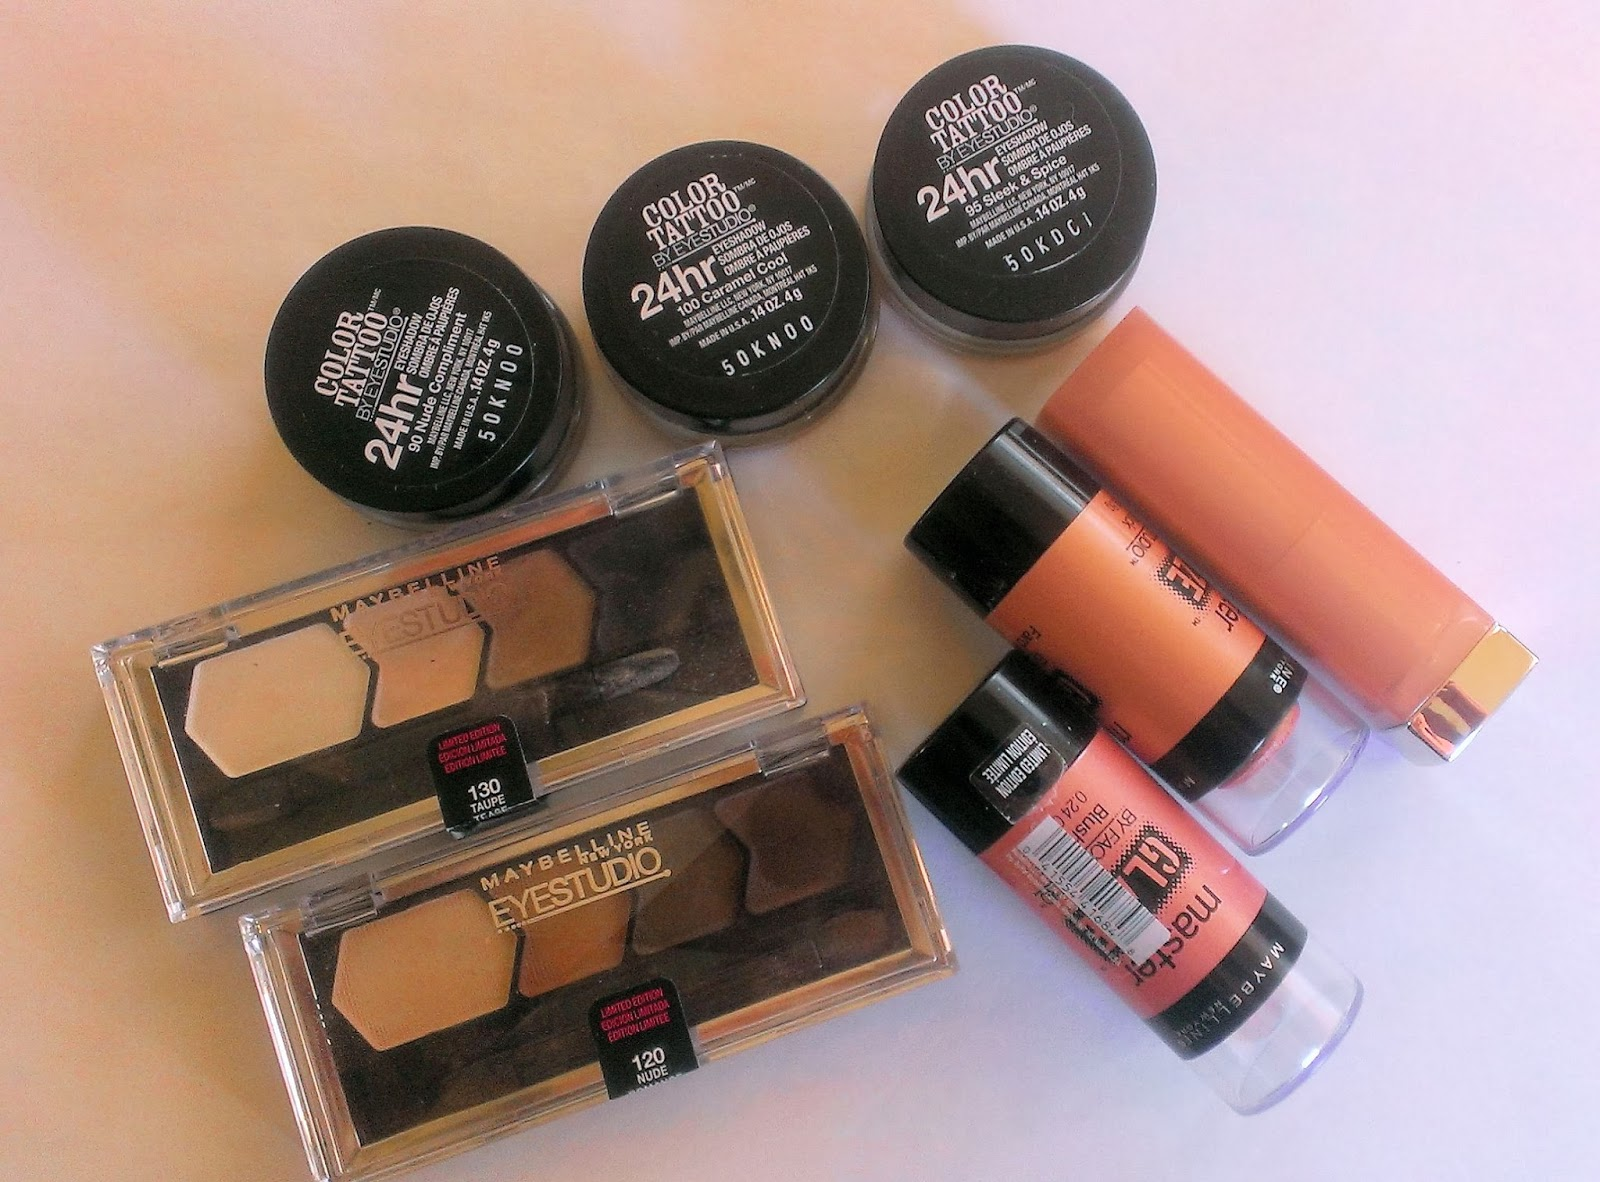 Maybelline Dare To Go Nude: Color Elixir Lip Gloss